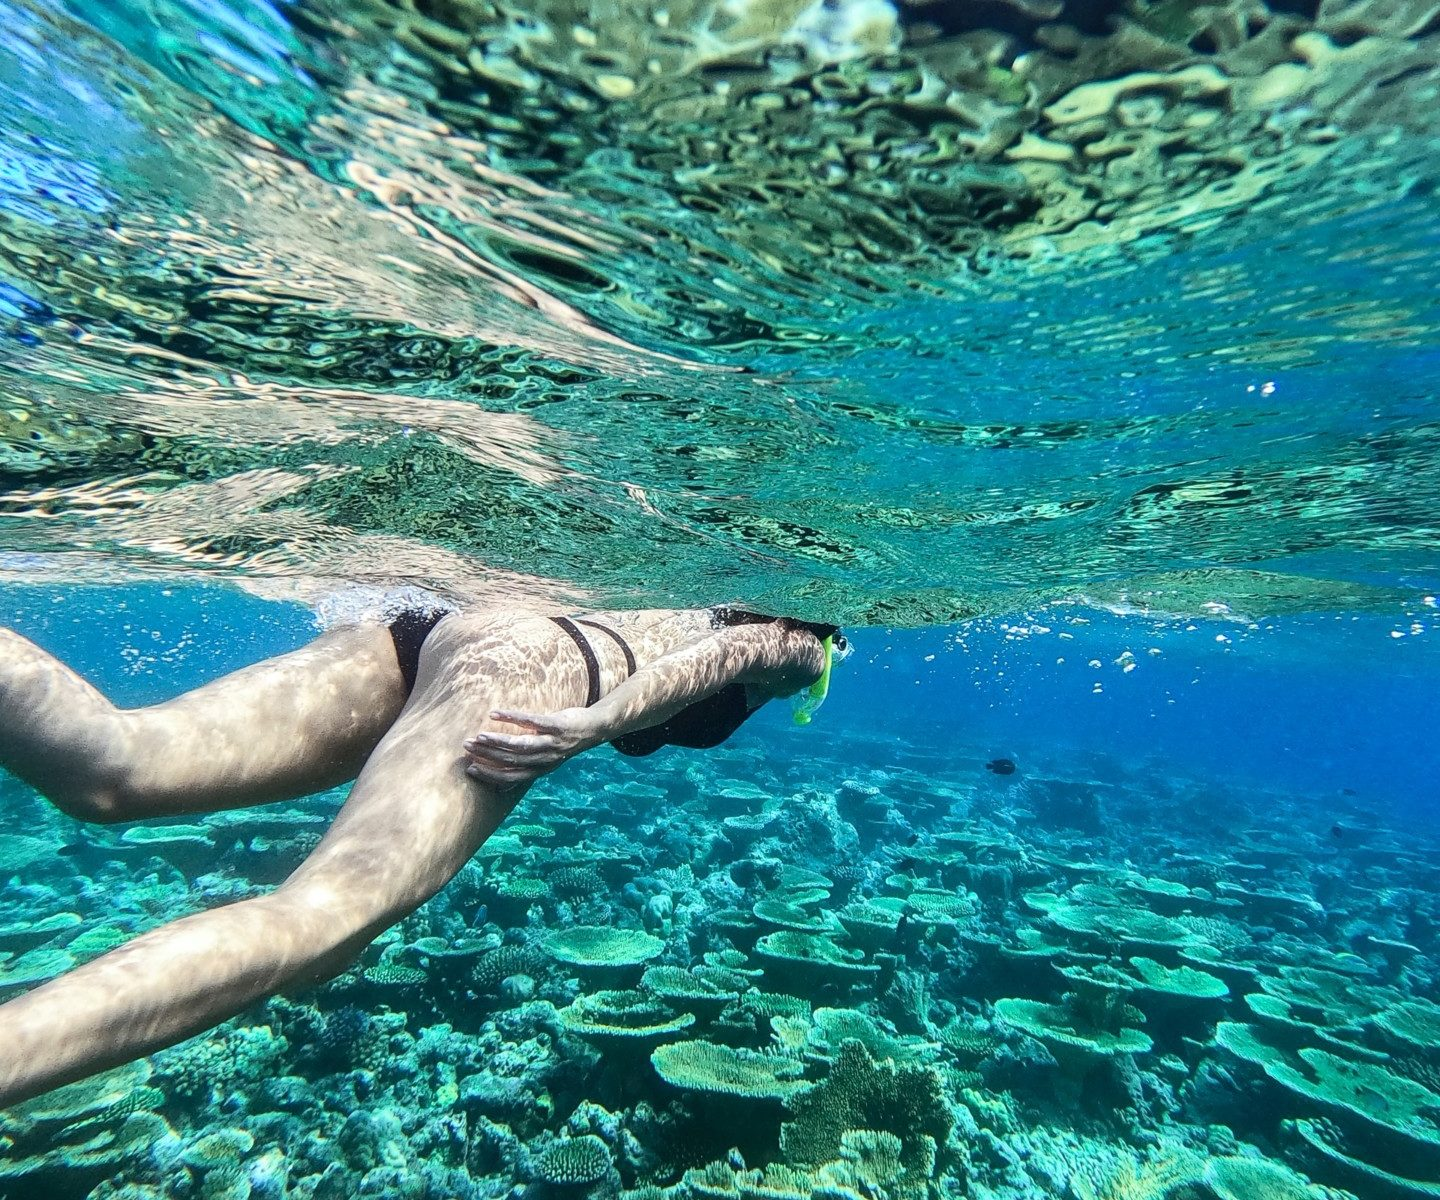 How Does Snorkeling Affect Coral Reefs